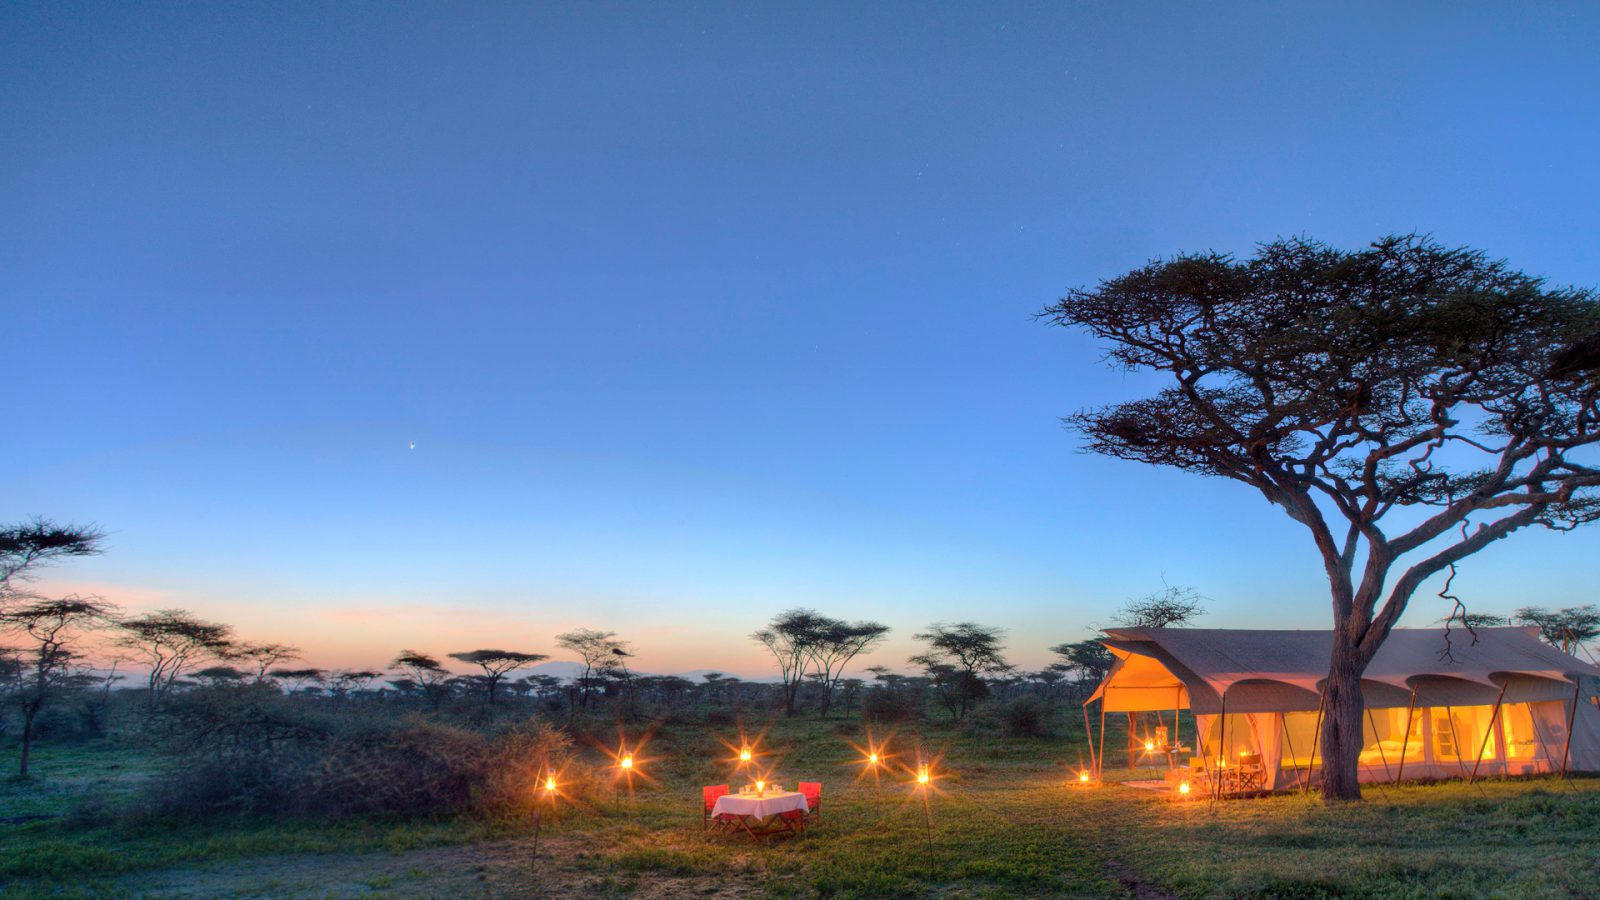 Experience a classic Tanzanian safari in spectacular solitude and soothing comfort – with only the canvas walls of your tent separating you from the wonder of the Serengeti.